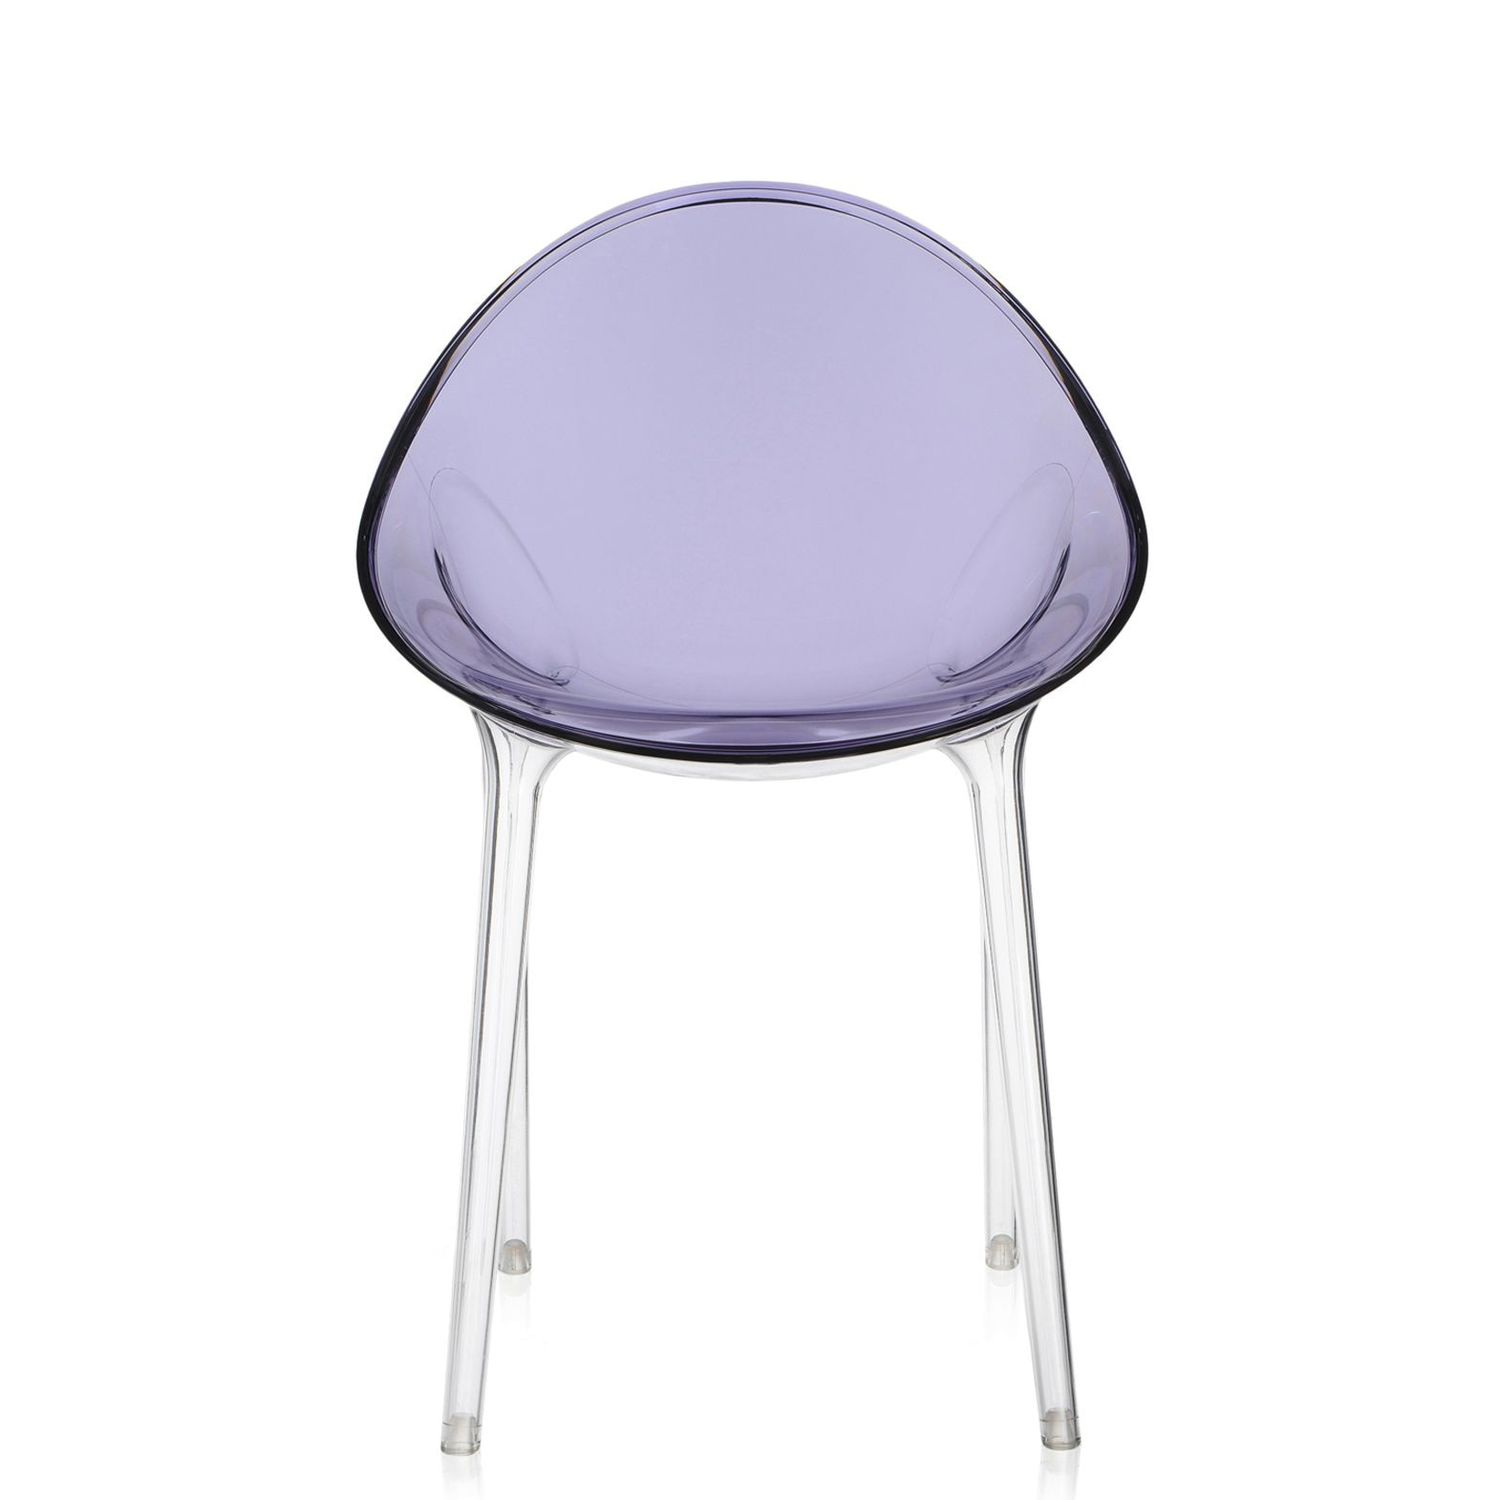 Sedie Policarbonato Trasparente Colorate.Sedia Design Organico Mr Impossible Kartell In